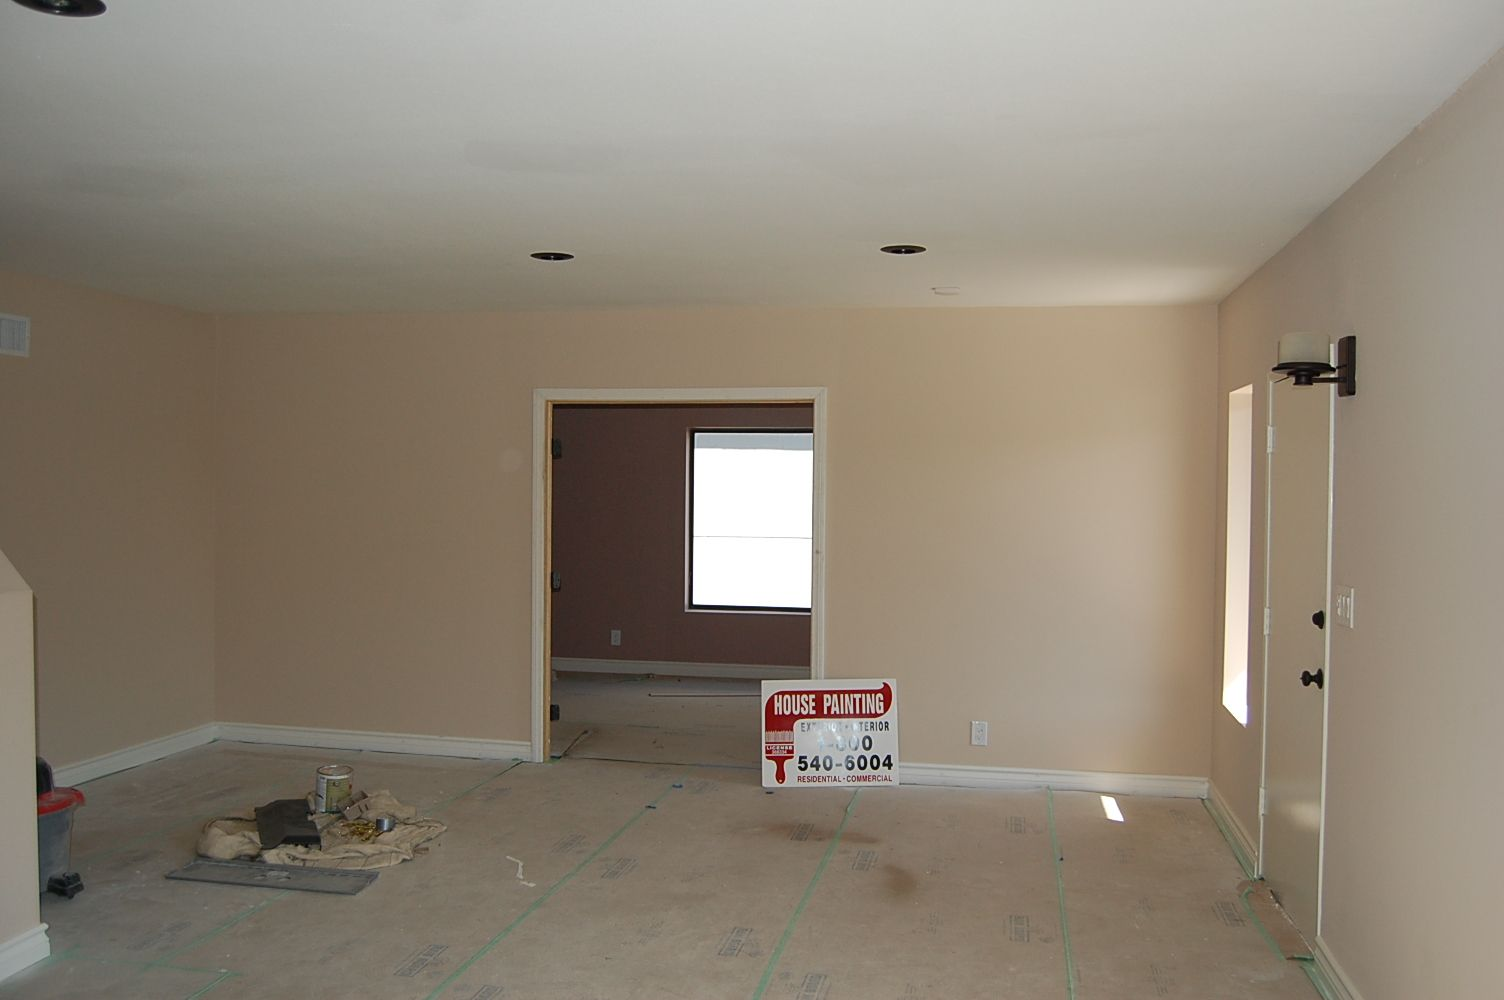 Home Interior Painting Exterior Master Bedroom Interior Painting Looking For Professional House .